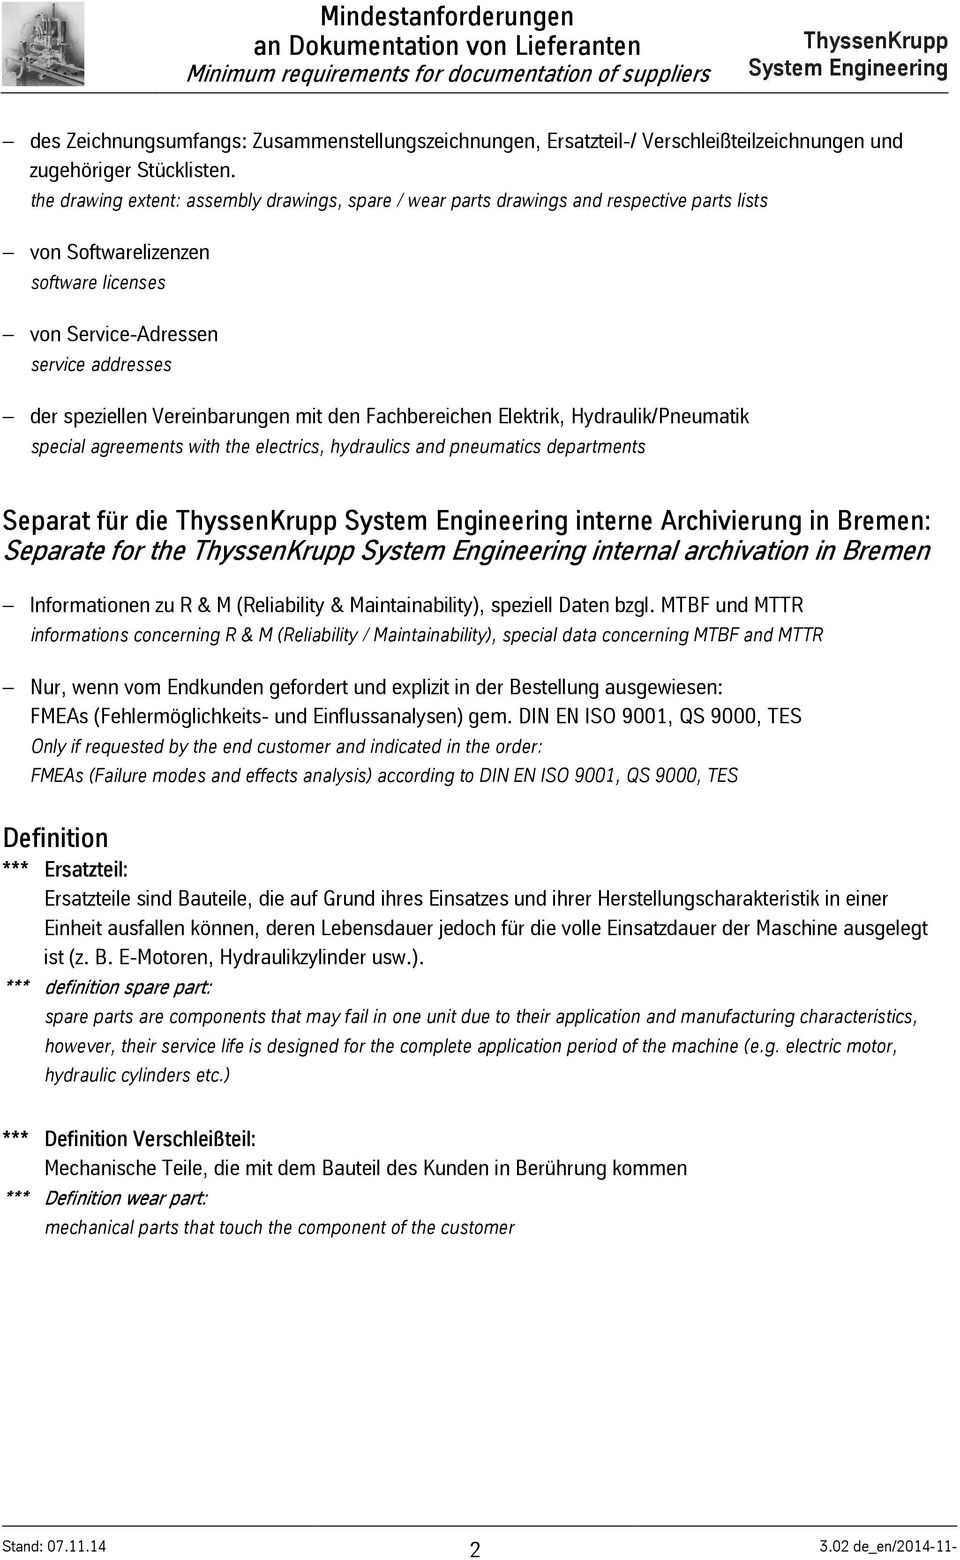 derspeziellenvereinbarungenmitdenfachbereichenelektrik,hydraulik/pneumatik special agreements with the electrics, hydraulics and pneumatics departments Separat für die ThyssenKrupp System Engineering